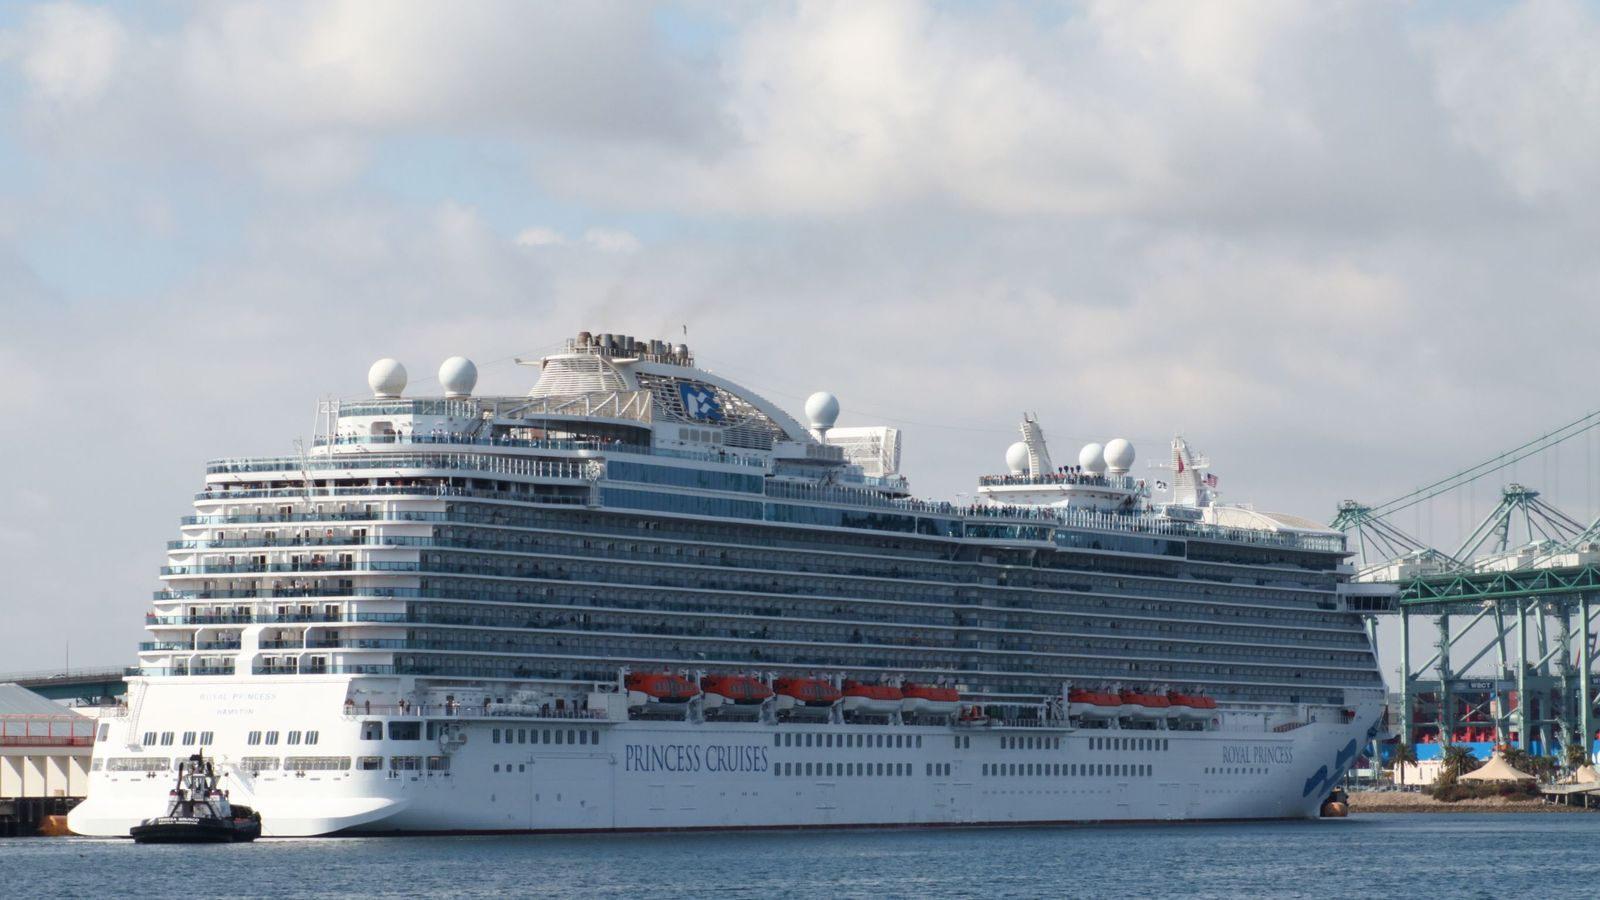 Cruise ship passengers die after sightseeing planes collide